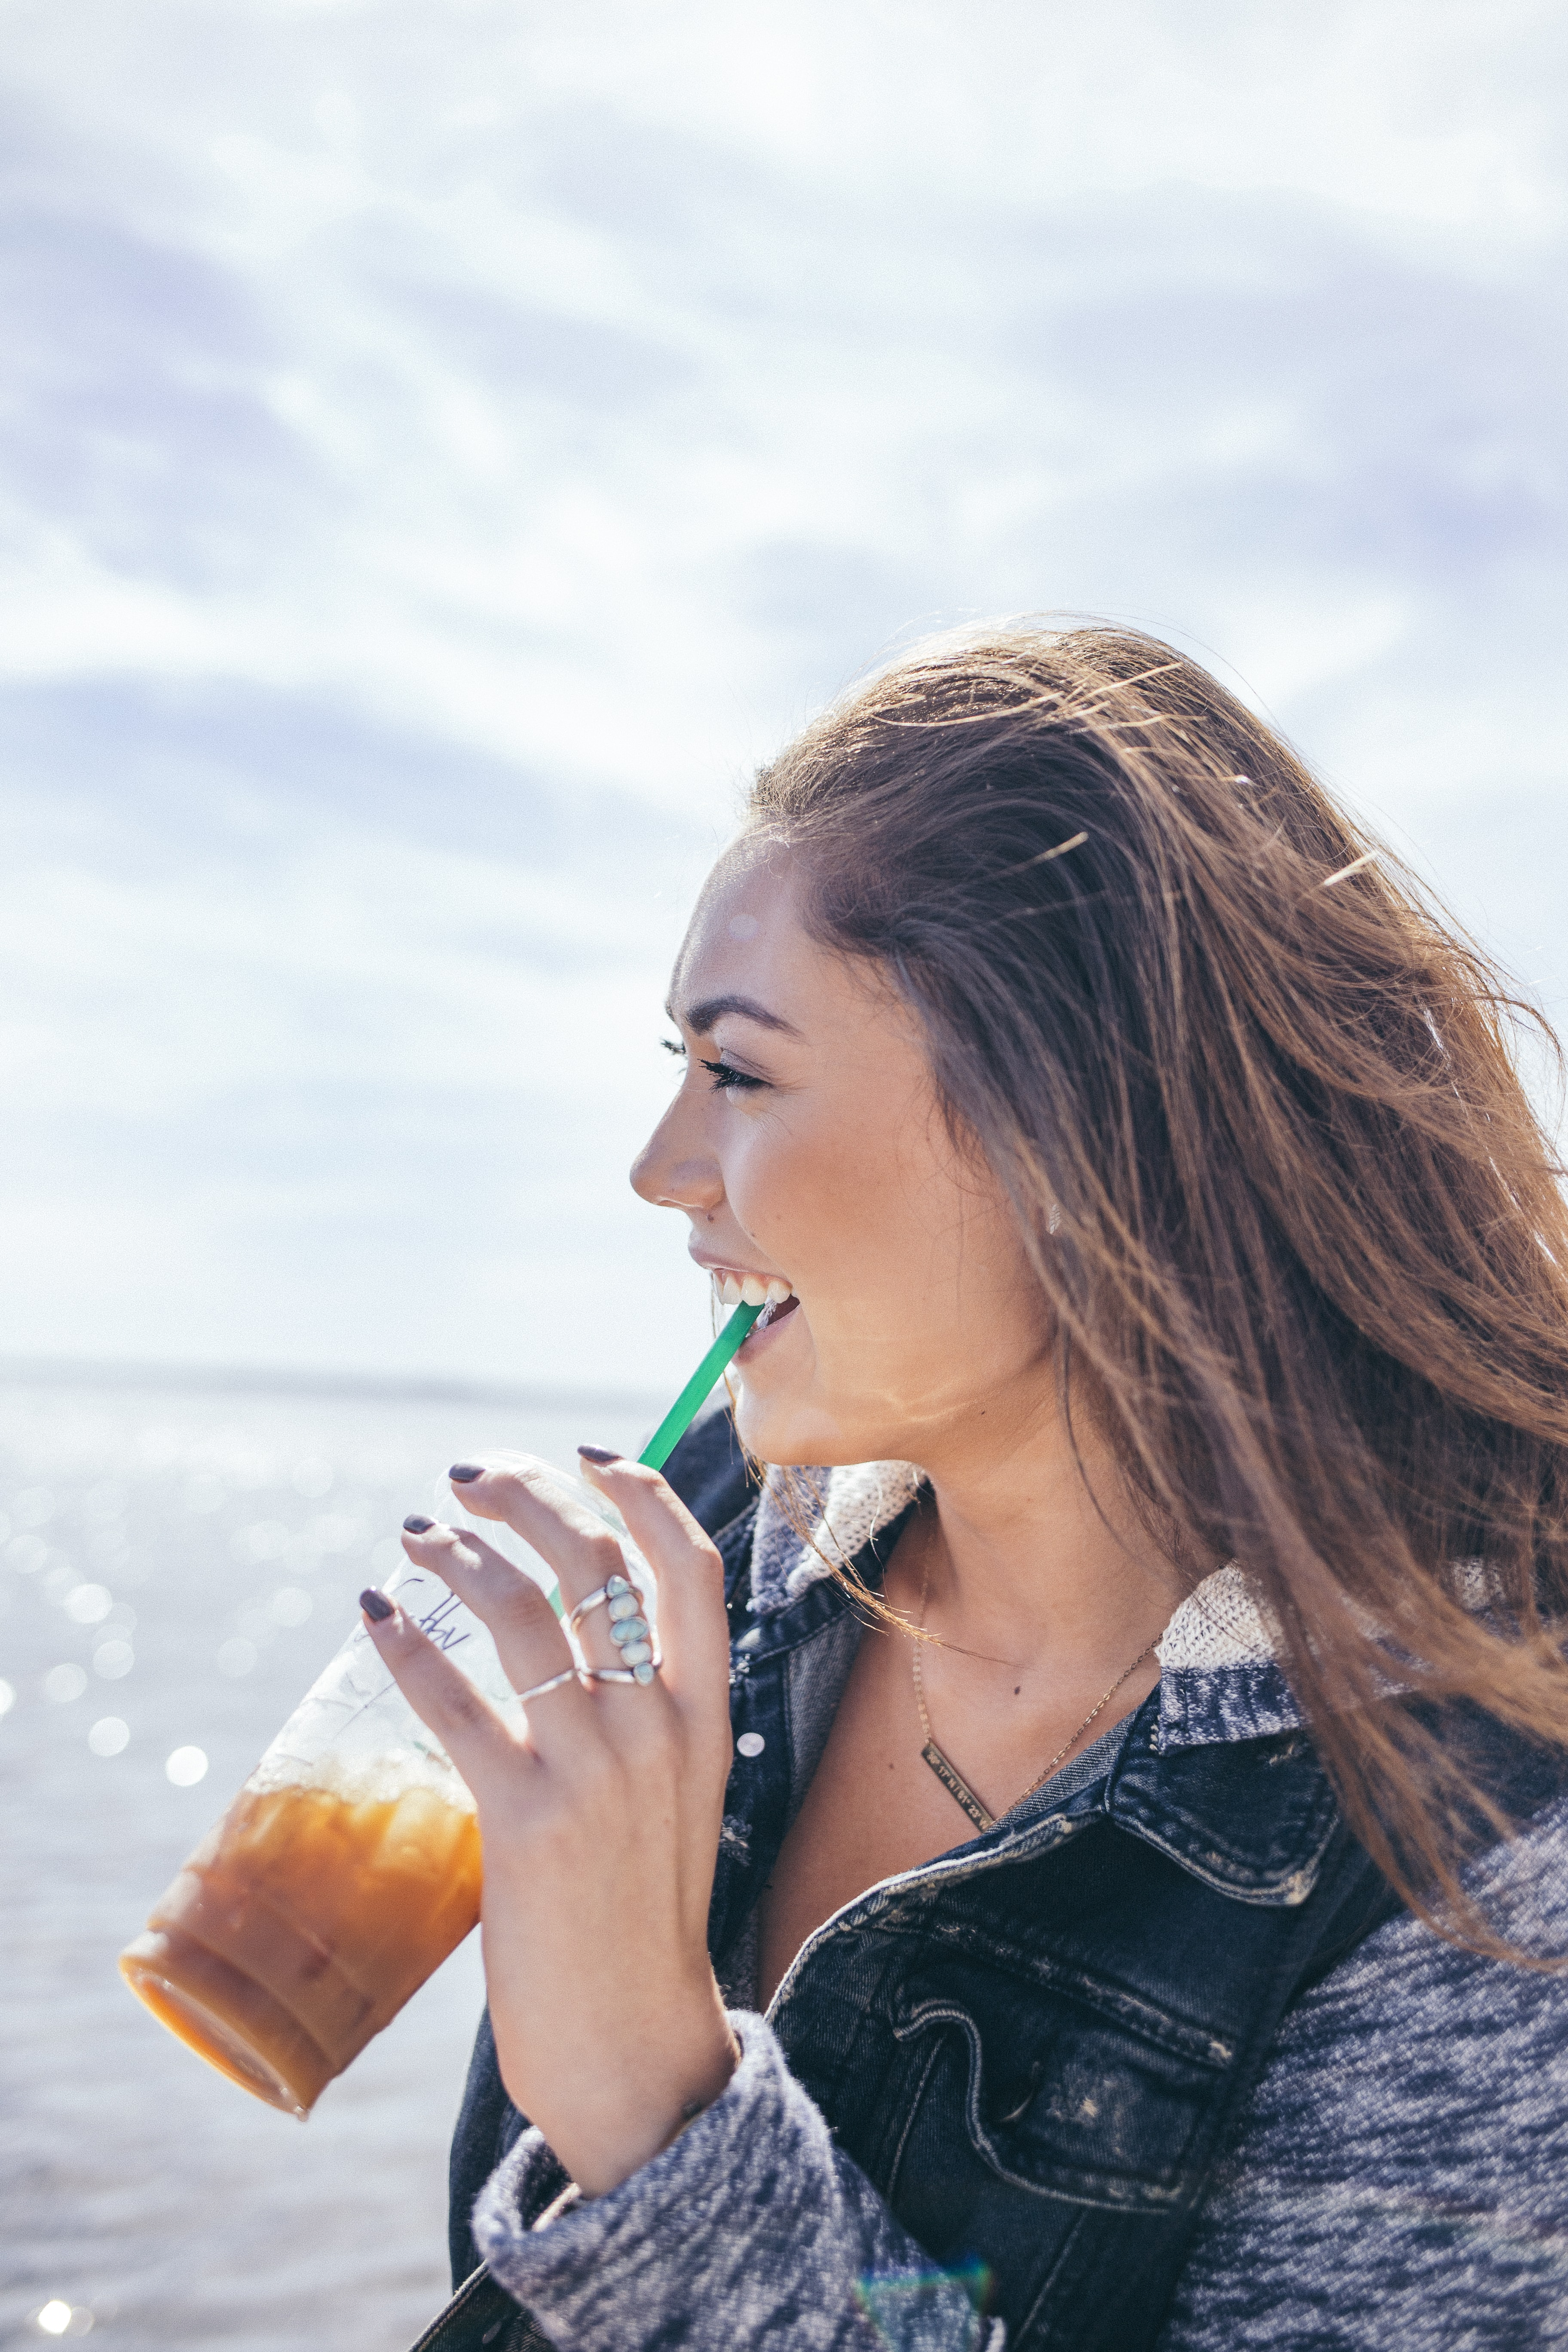 A woman drinking a Starbucks iced coffee